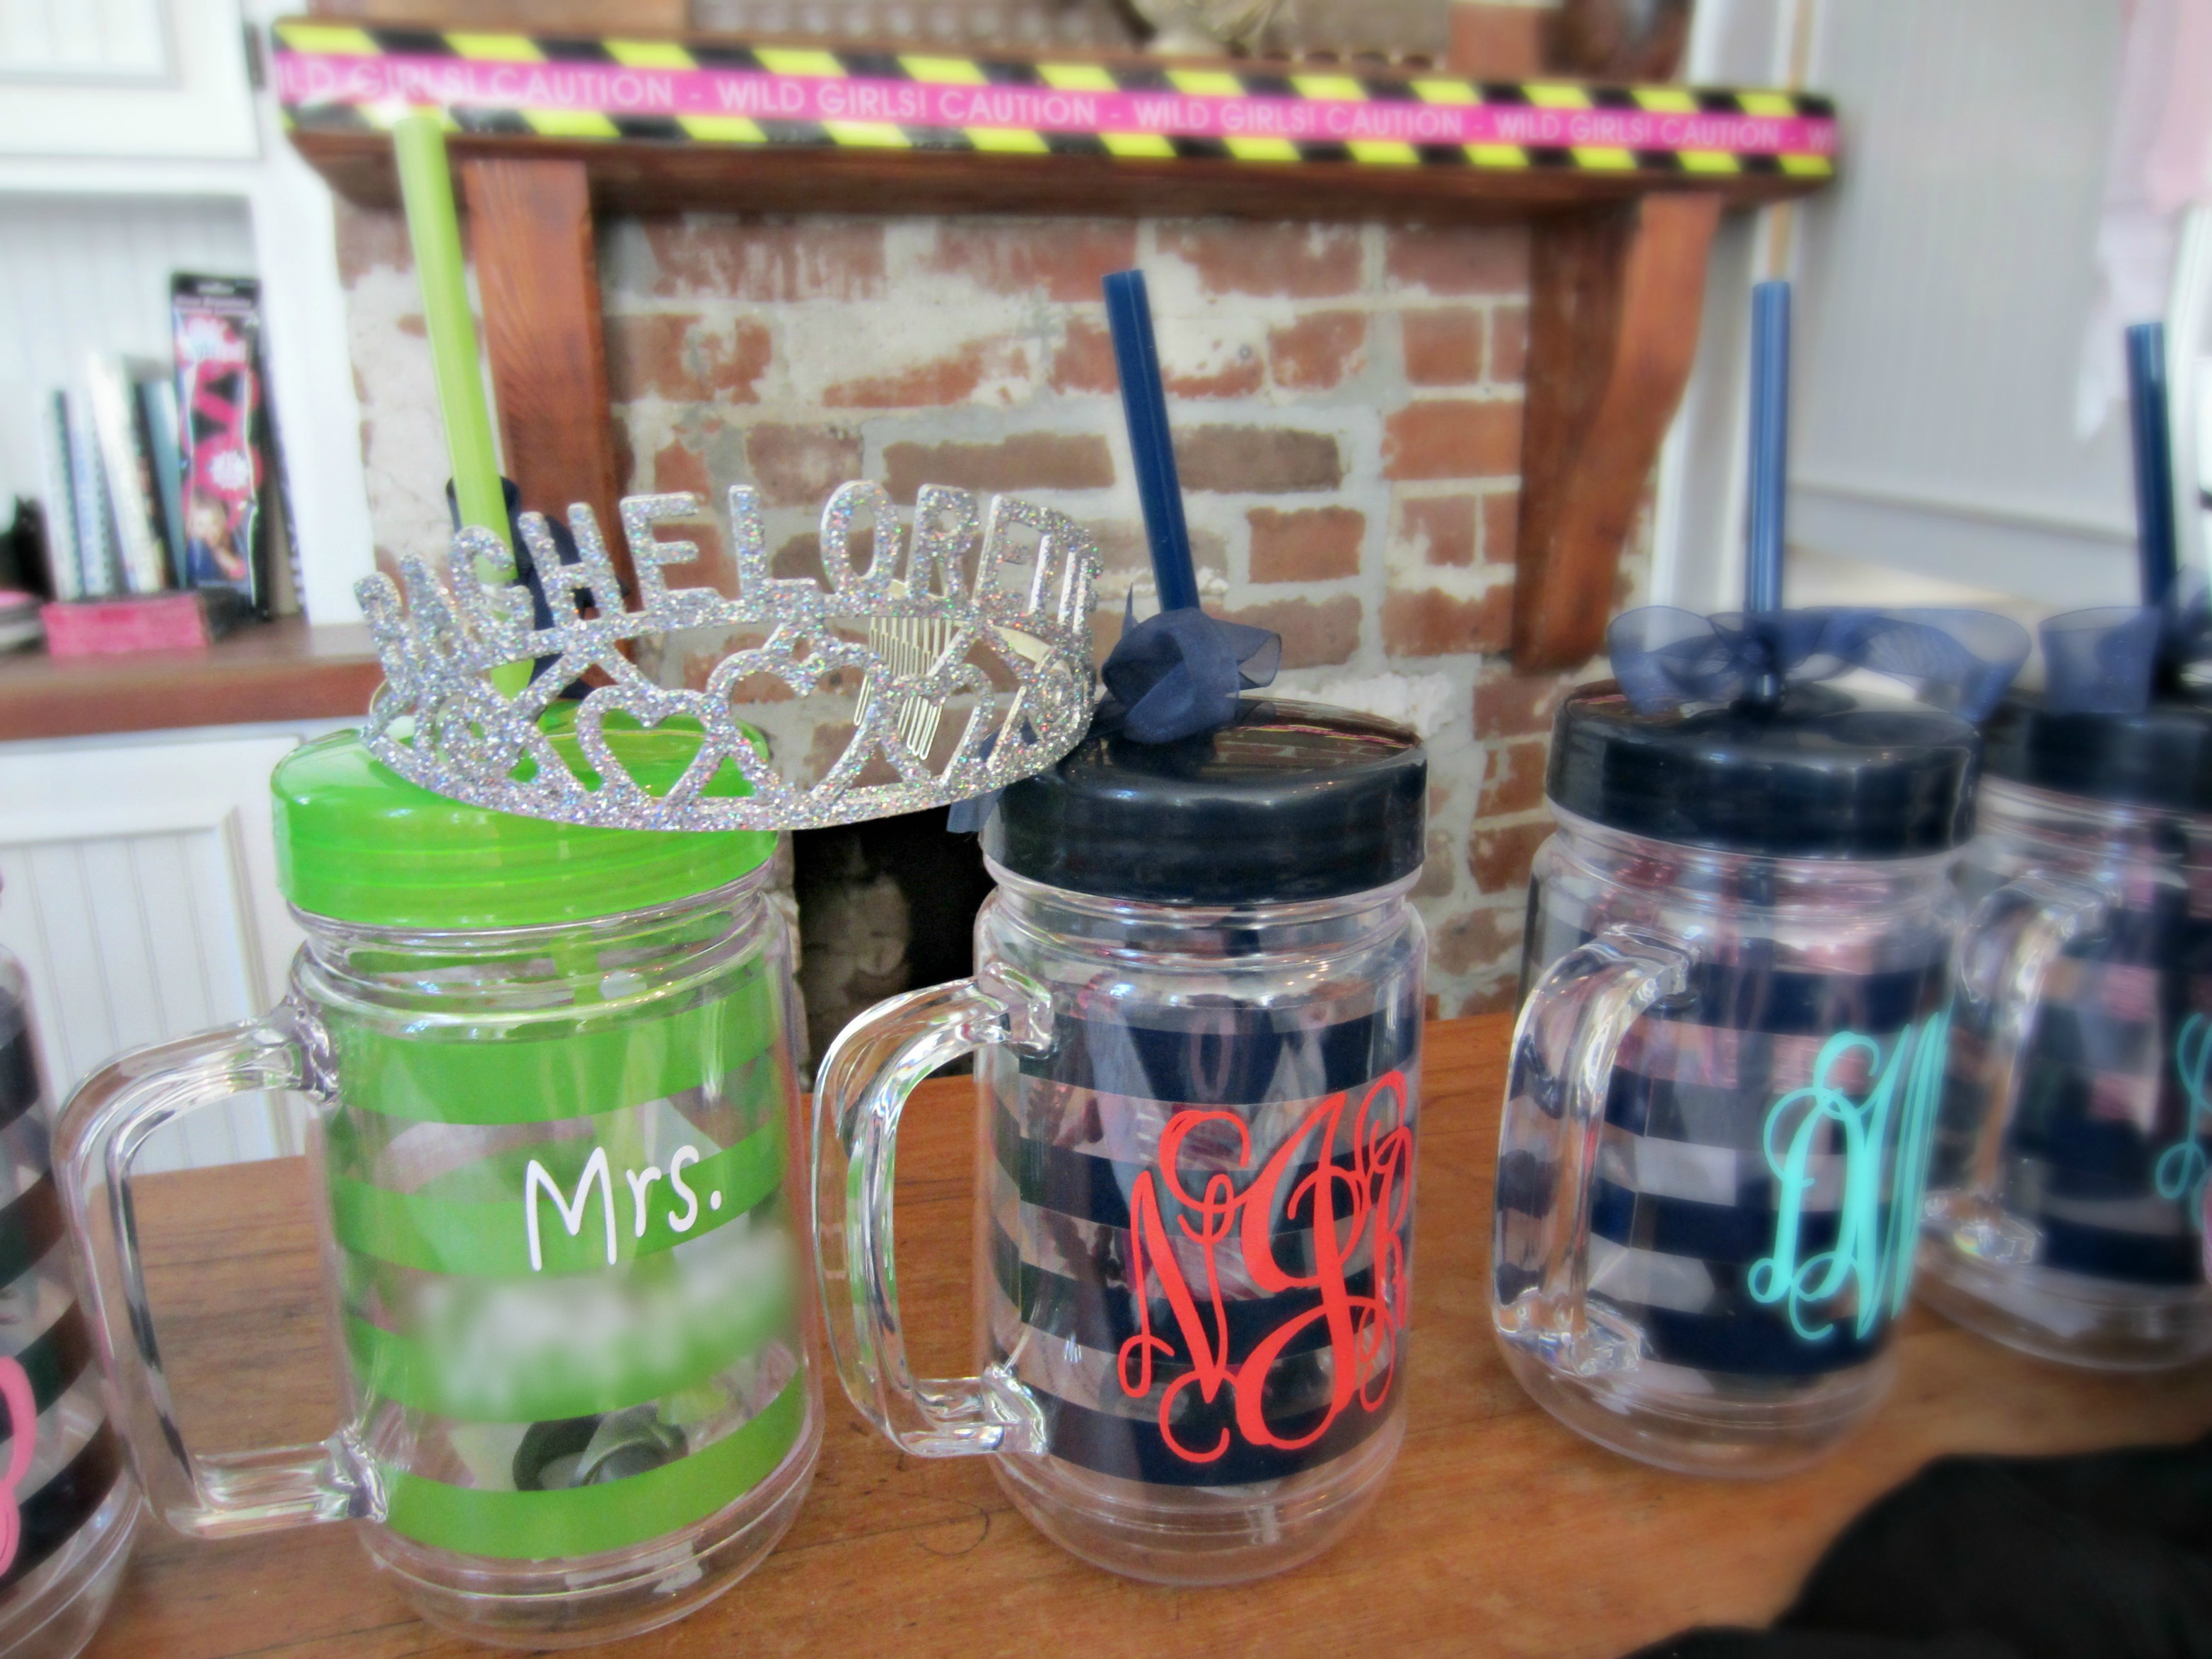 Bachelorette party tumblers blurred